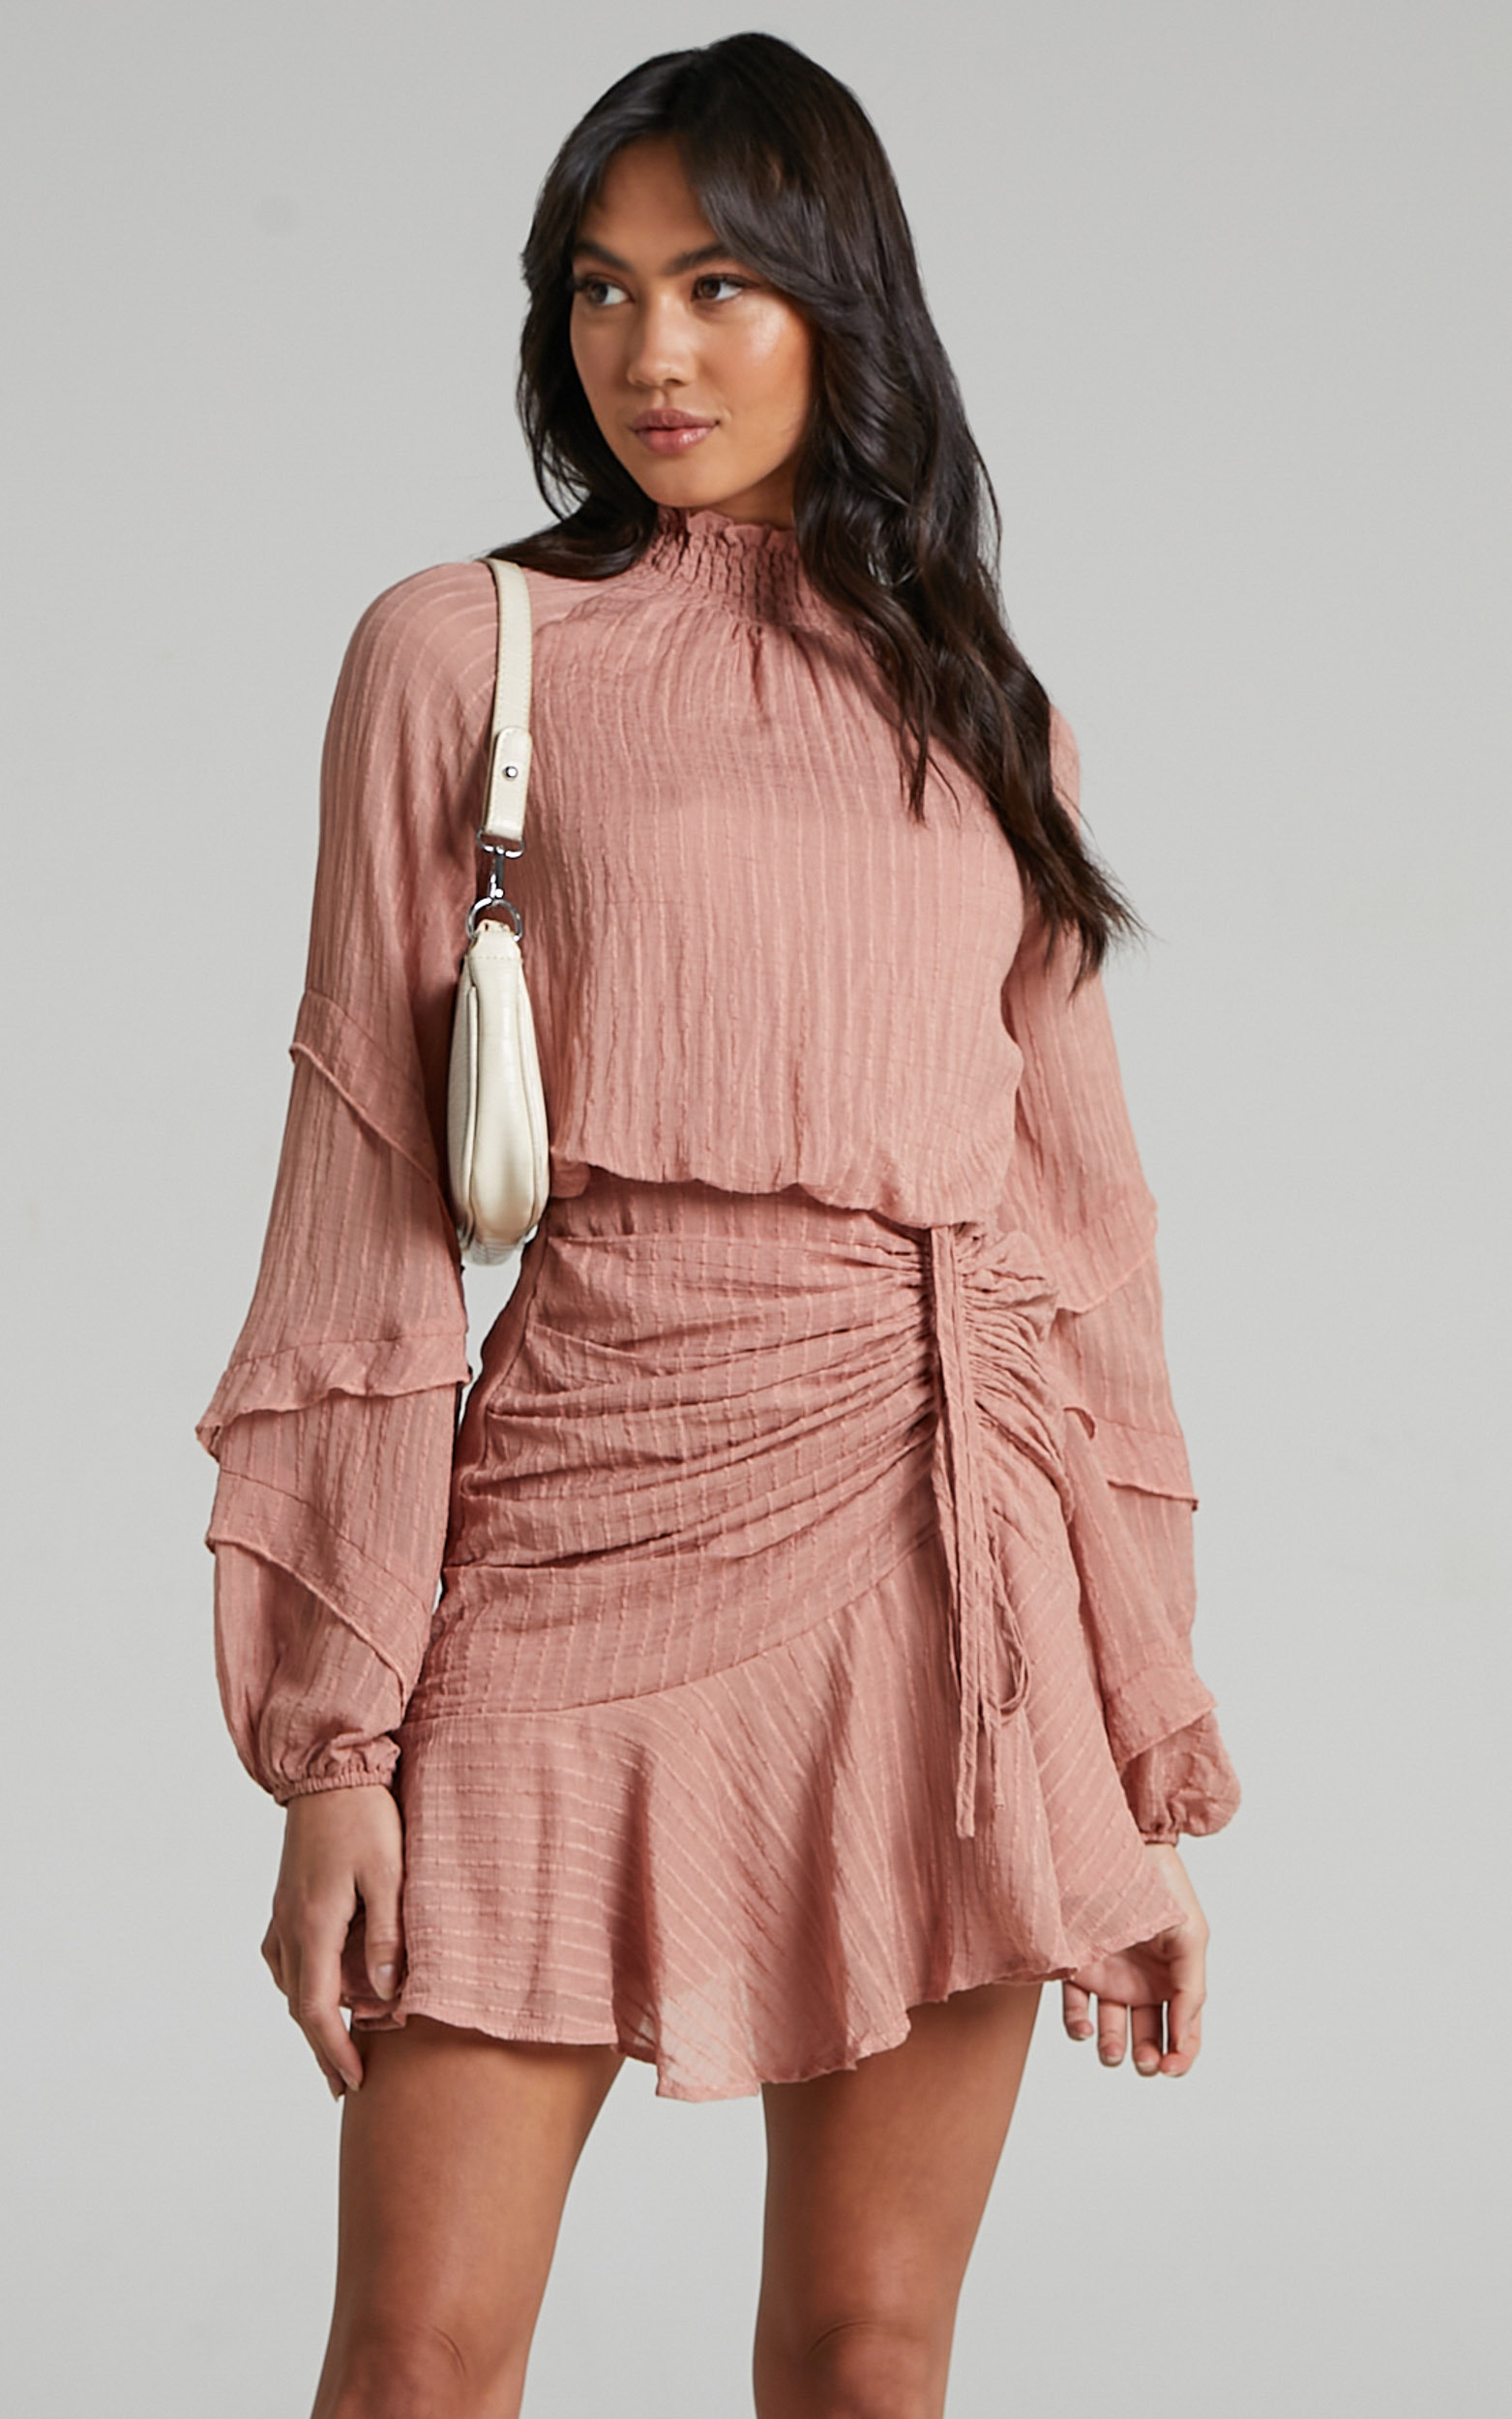 Mailee Long Sleeve Halter Neck Mini Dress in Dusty Rose - 04, PNK1, hi-res image number null